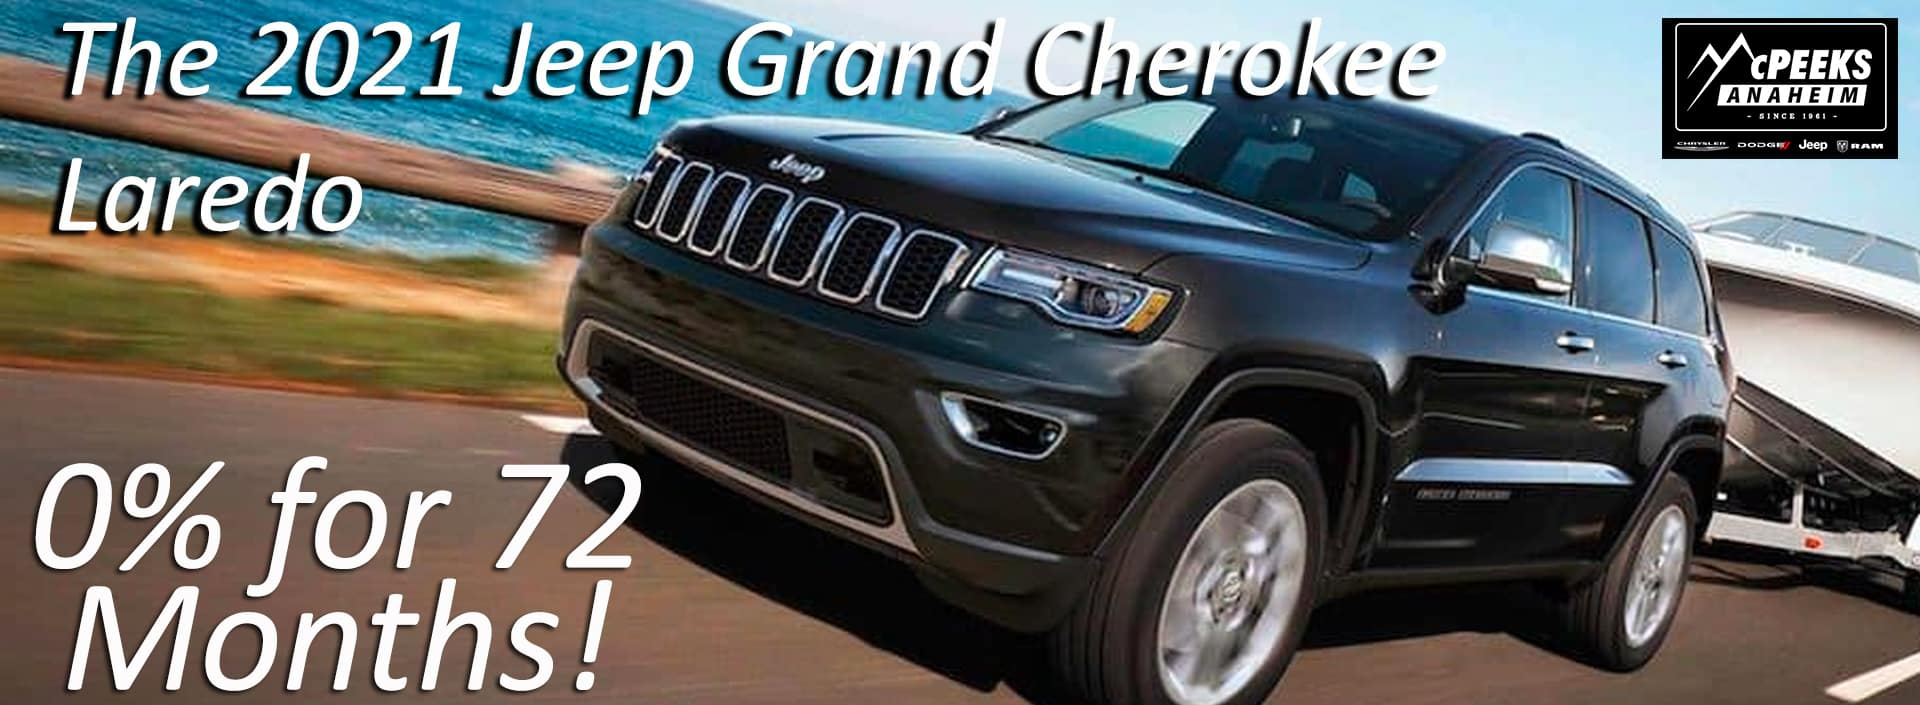 2021_Jeep_Grand_Cherokee_Lareado_Banner_April